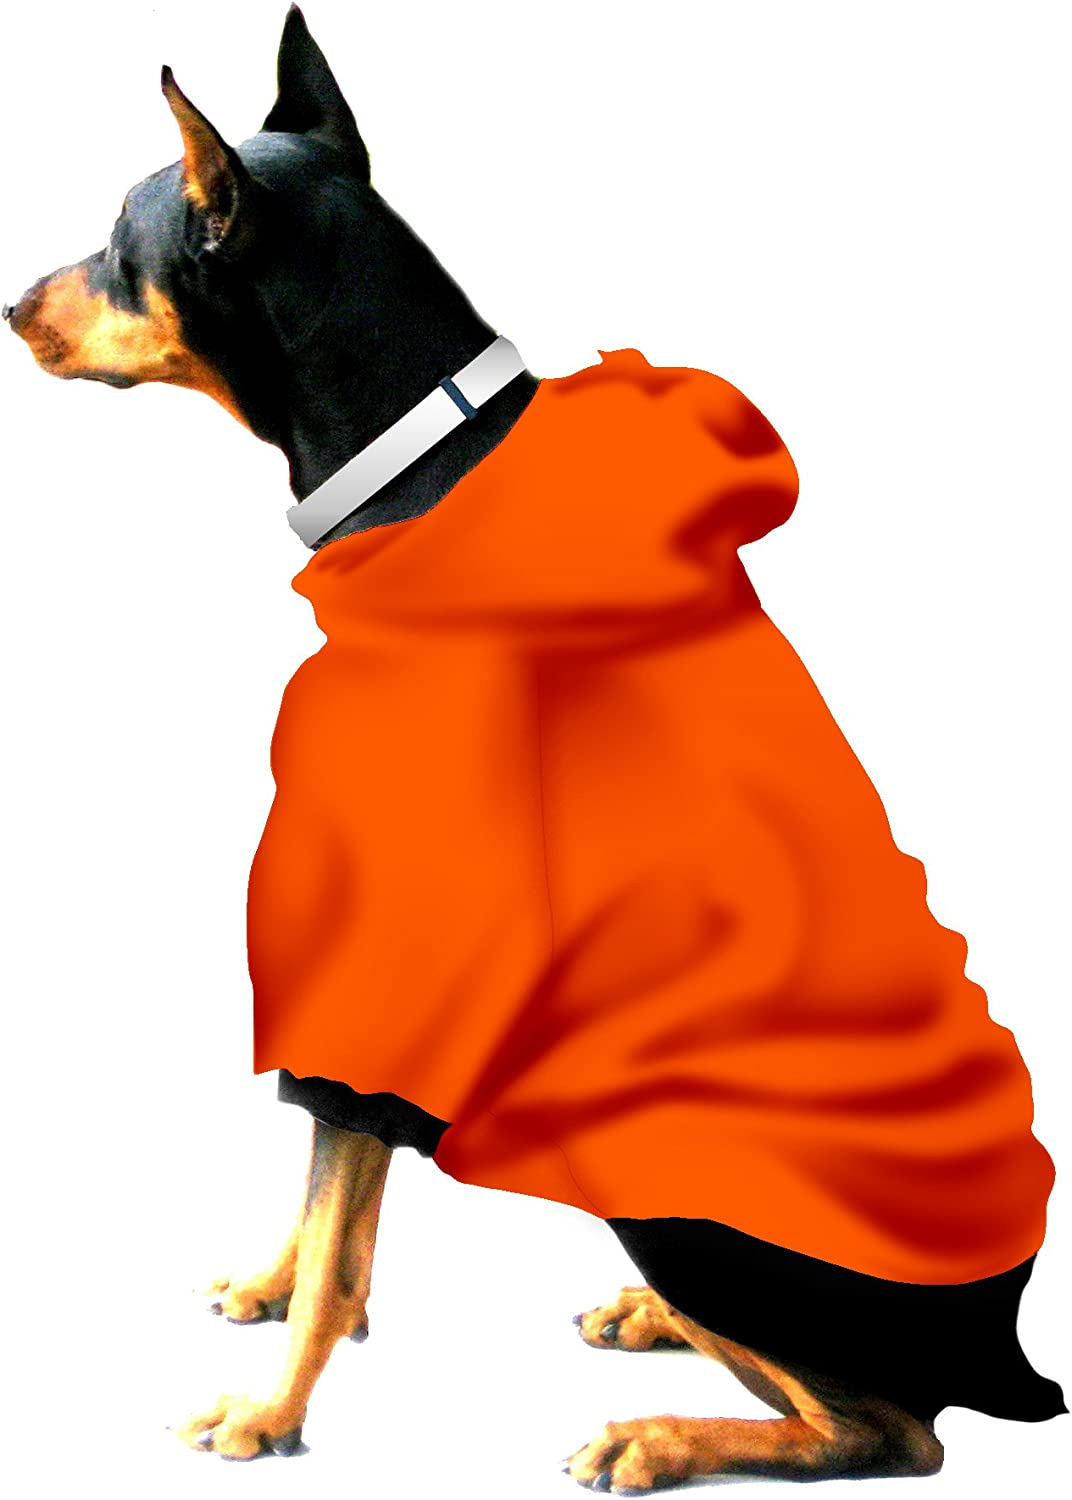 Boxer  Doberman Dog Sweatshirt for Large Dog (60 to 90 Pounds) orange Black Trim